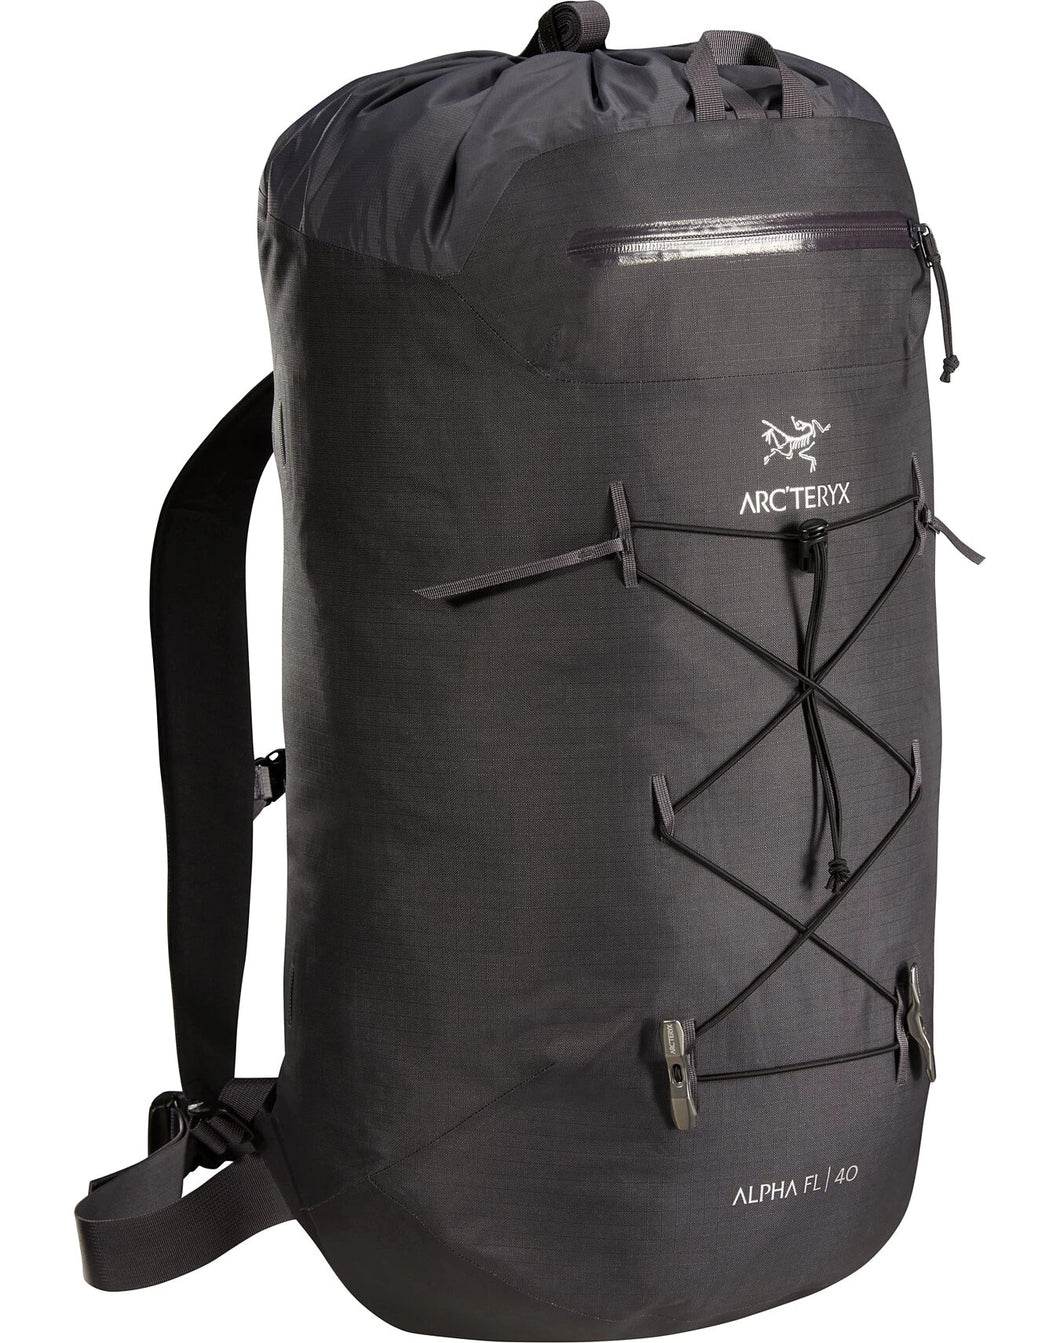 Arcteryx Alpha FL 40 Backpack